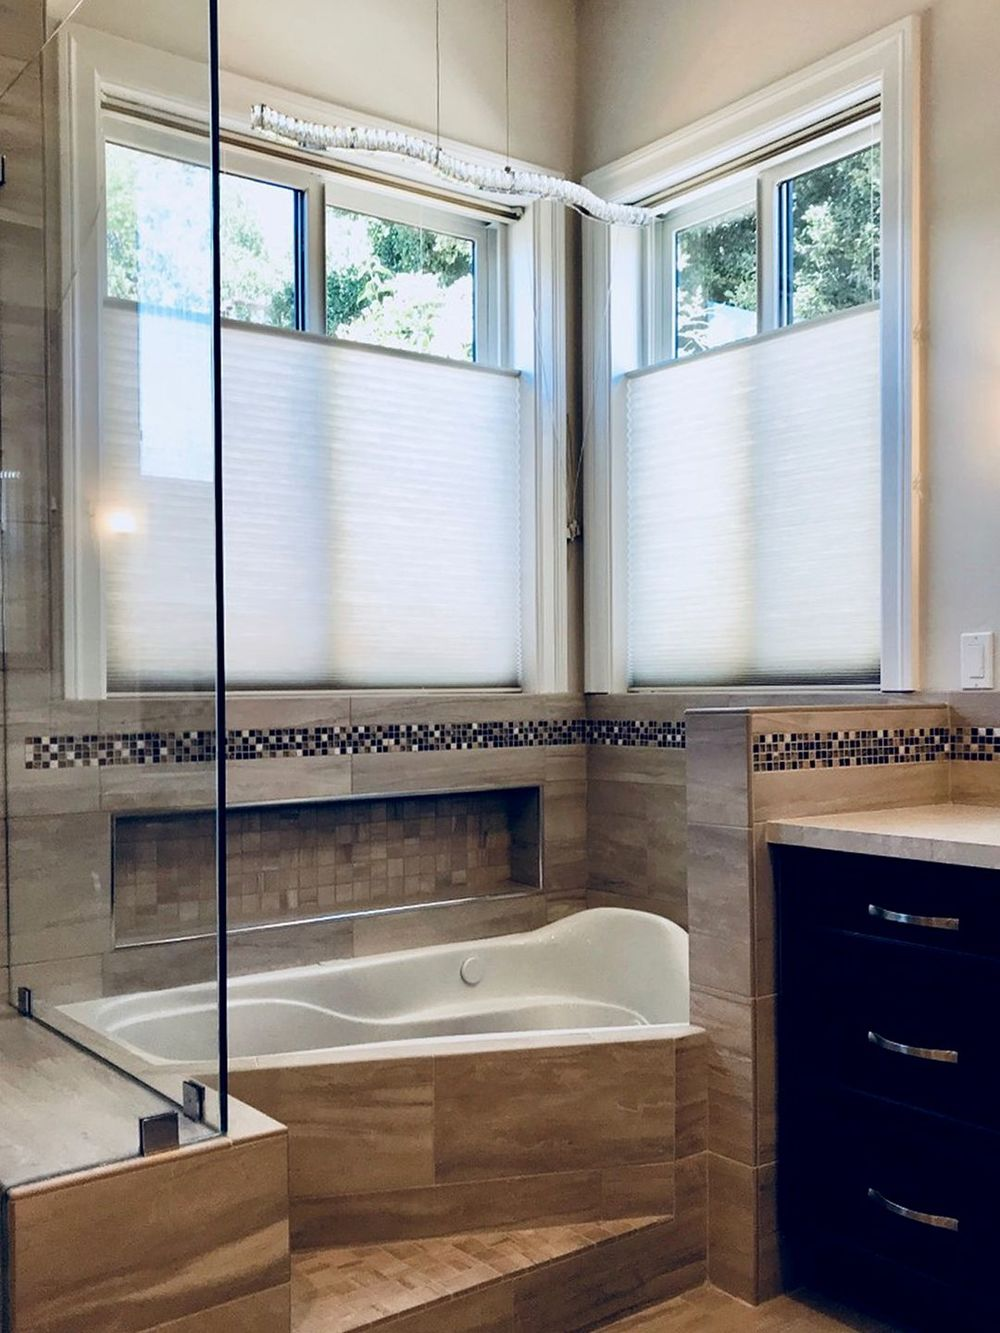 Primary bathroom boasting a striking drop-in soaking tub and a walk-in shower room. The room feature windows with window shades as well.